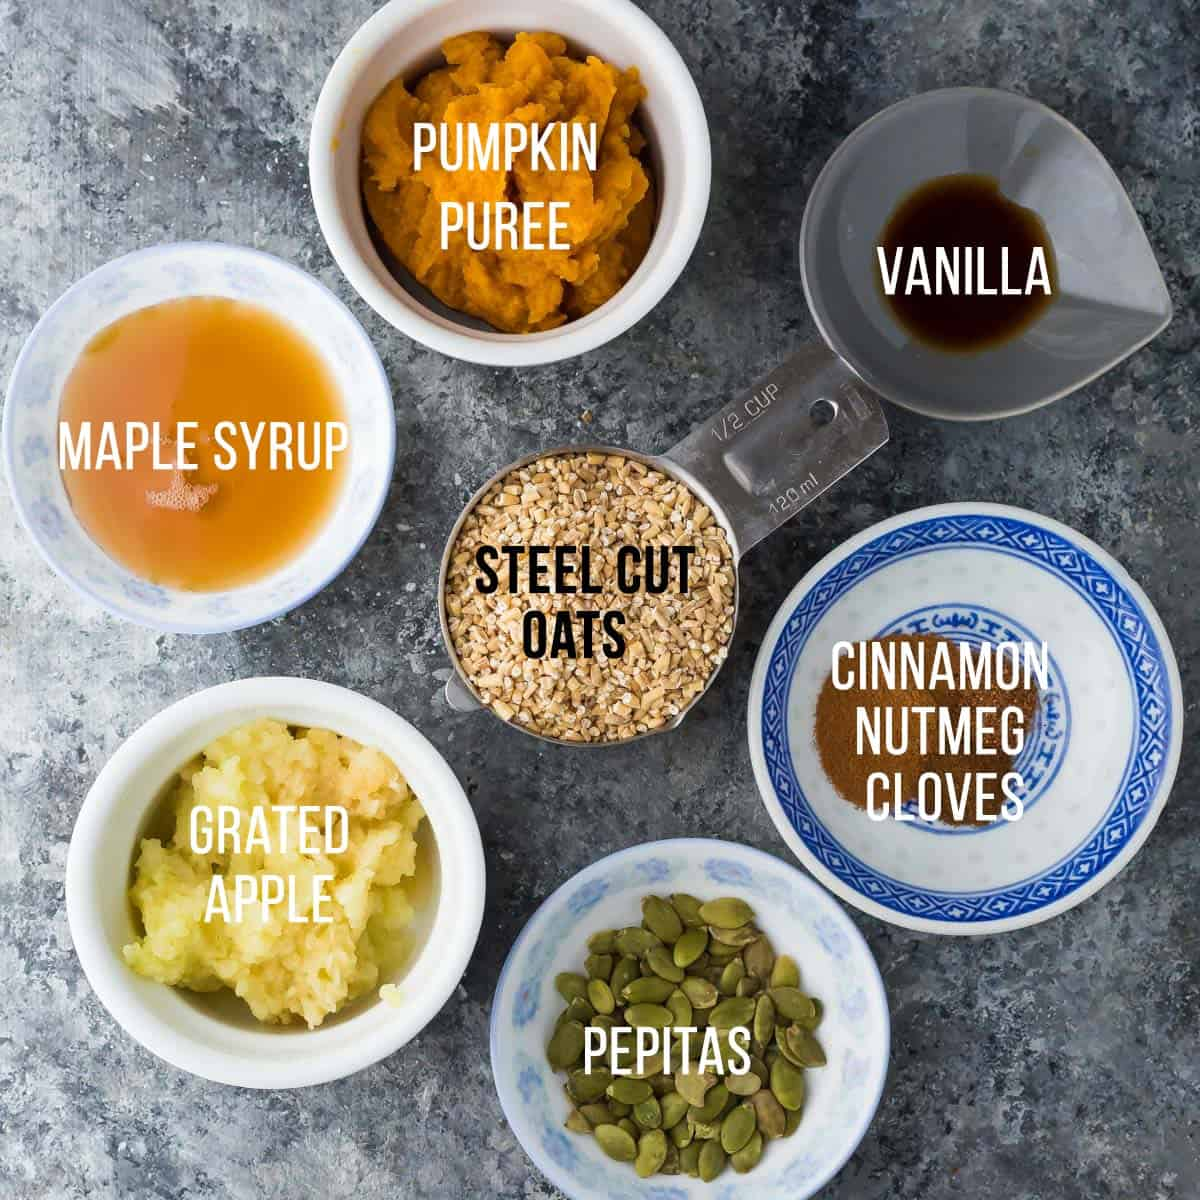 A healthy steel cut oats recipe with 7 flavors! These are easy to make ahead and keep in the fridge or freezer for easy breakfasts. Plus instructions on how to cook steel cut oats in the Instant Pot, slow cooker or on the stovetop. #breakfast #oatmeal #instantpot #mealprep #freezermeal #steelcutoats